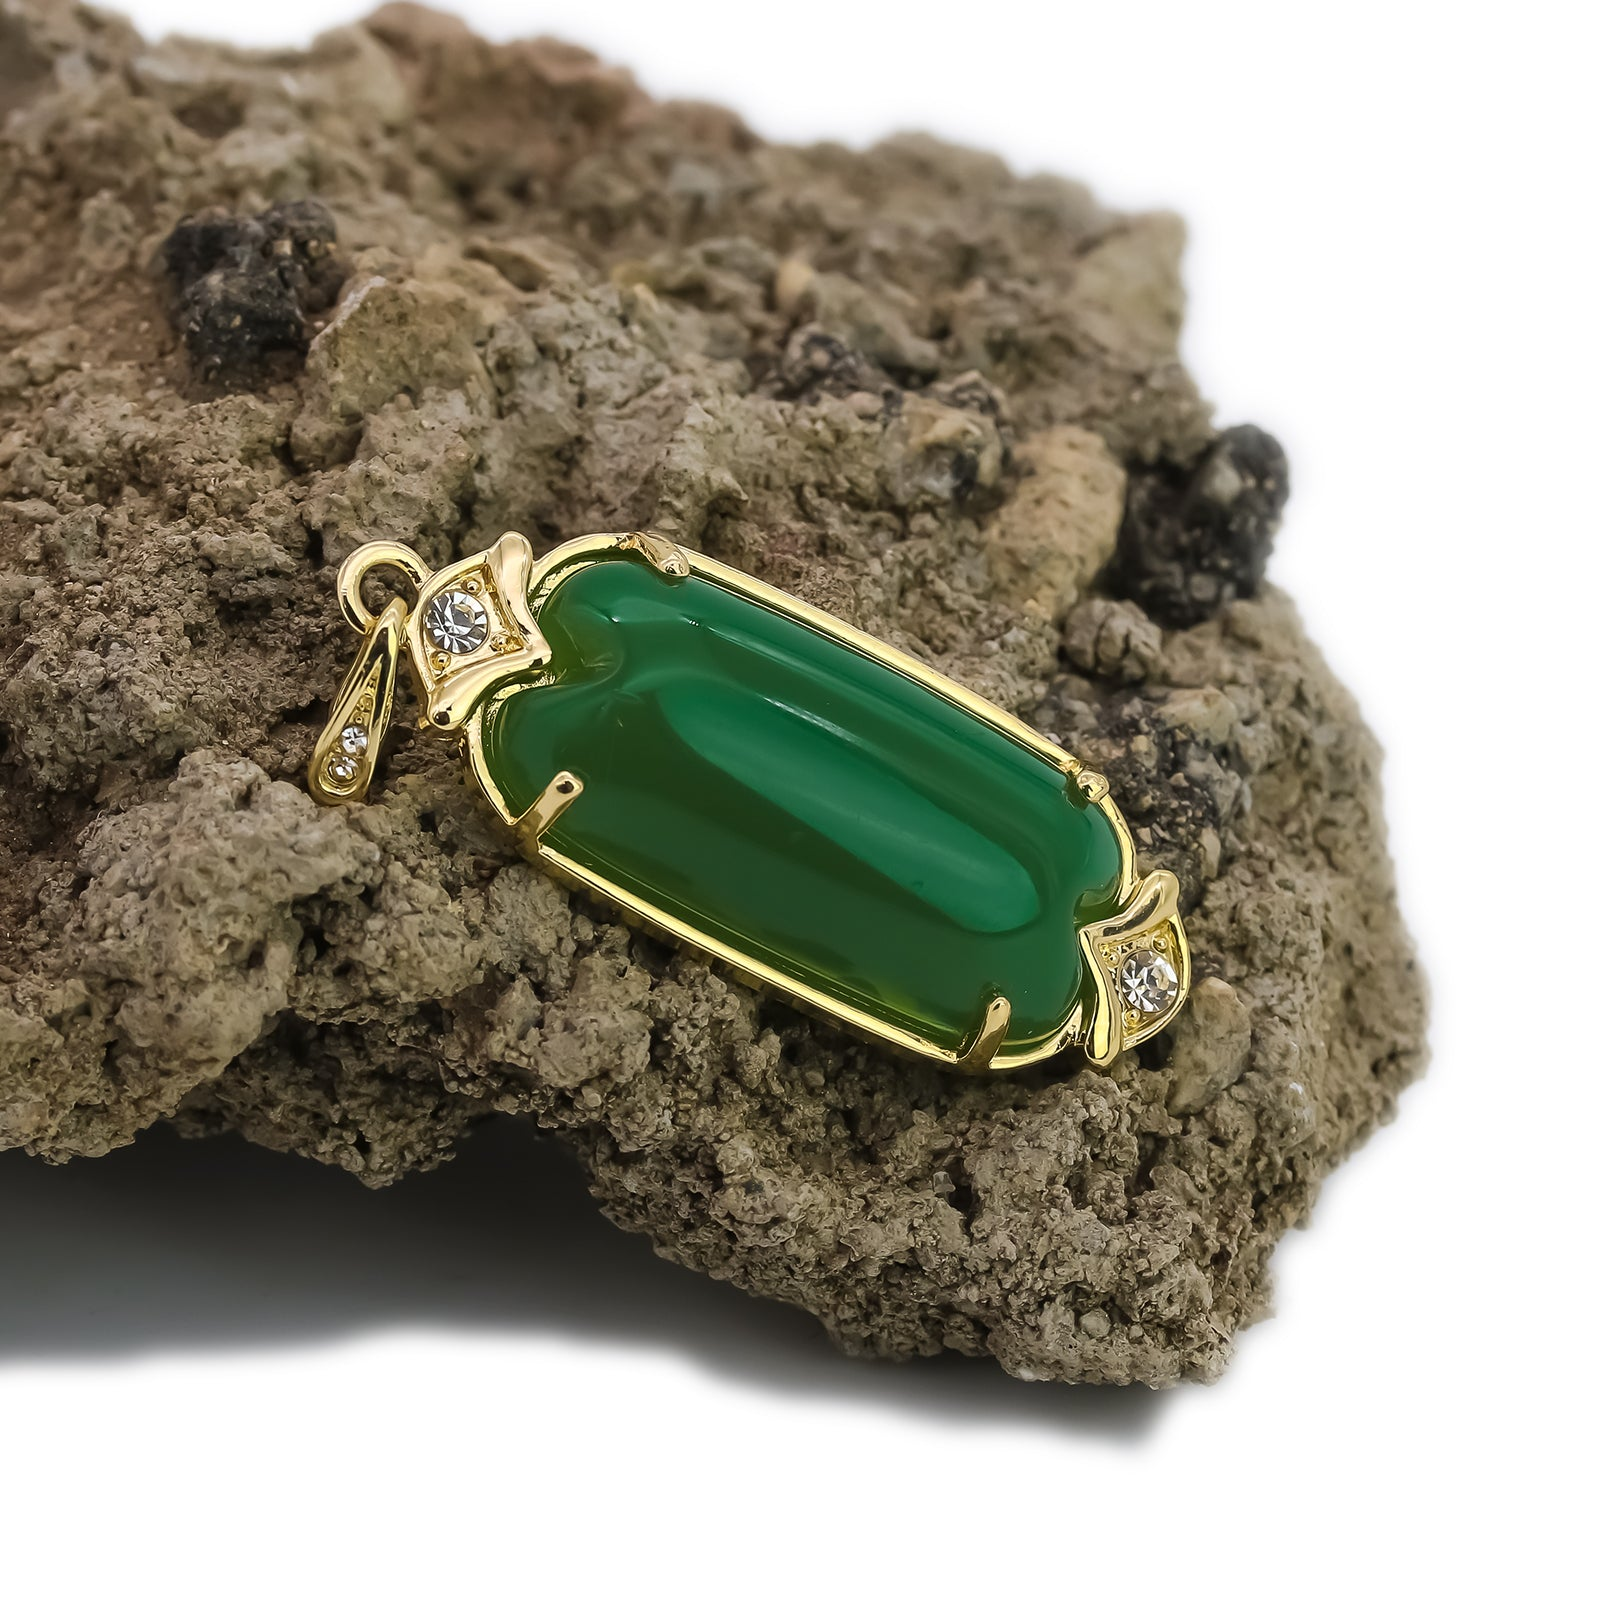 "Exquisite Iced Green Jade Long Oval Shape 14k Gold PT Pendant 18""20"" Figaro Chains"